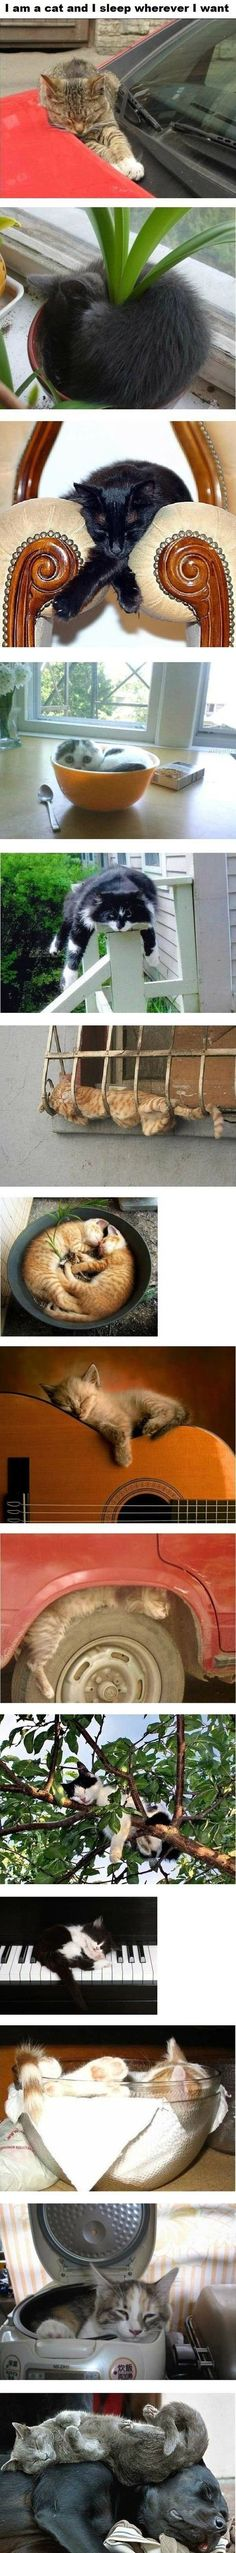 Im a cat and I sleep wherever I want....this is for you sam...my fav is the one in the cereal bowl!: